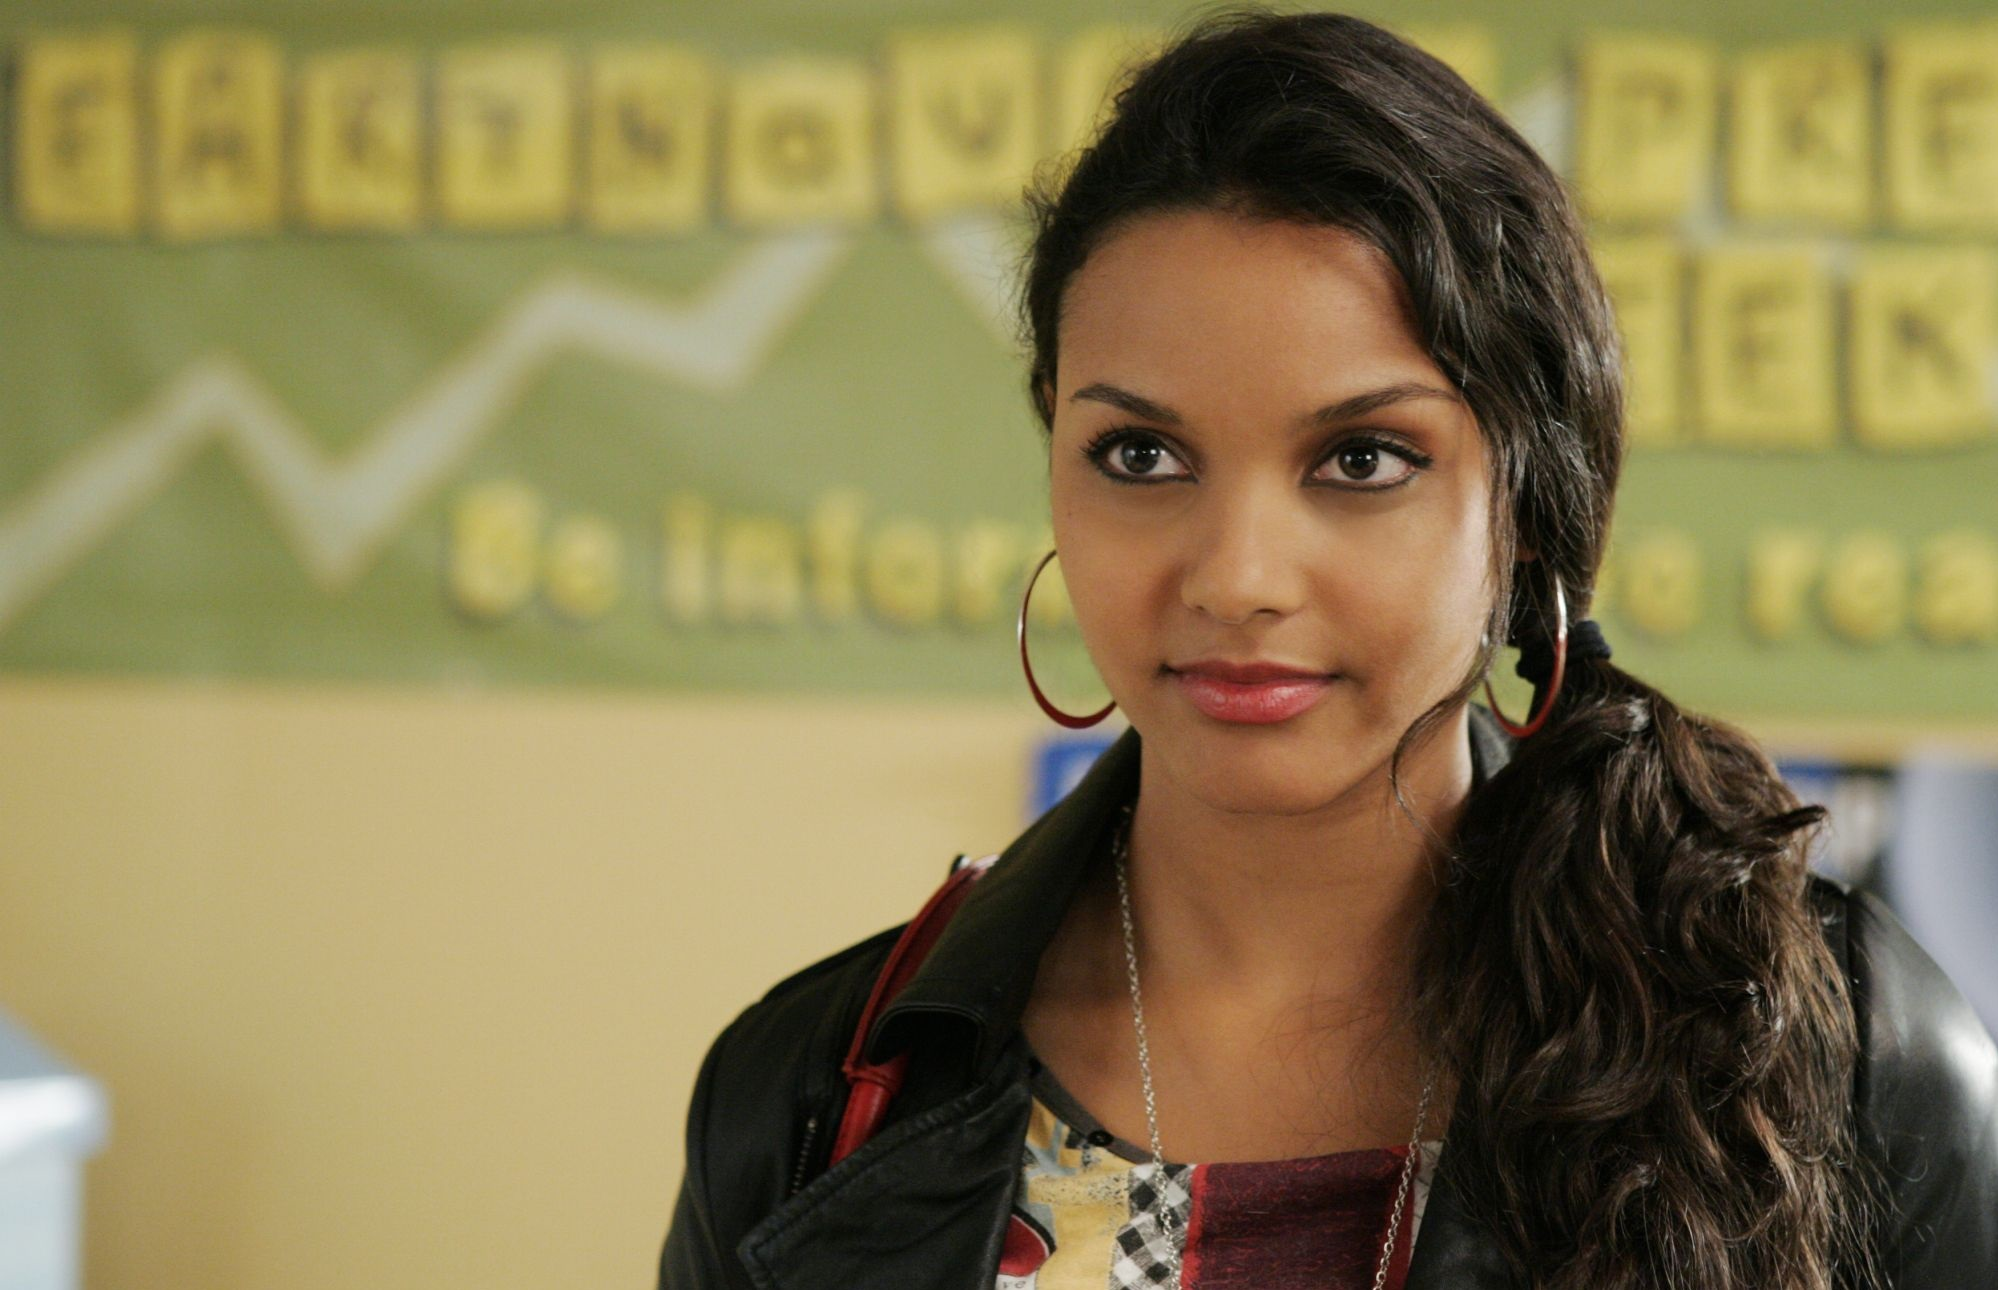 jessica lucas hd wallpapers - photo #7